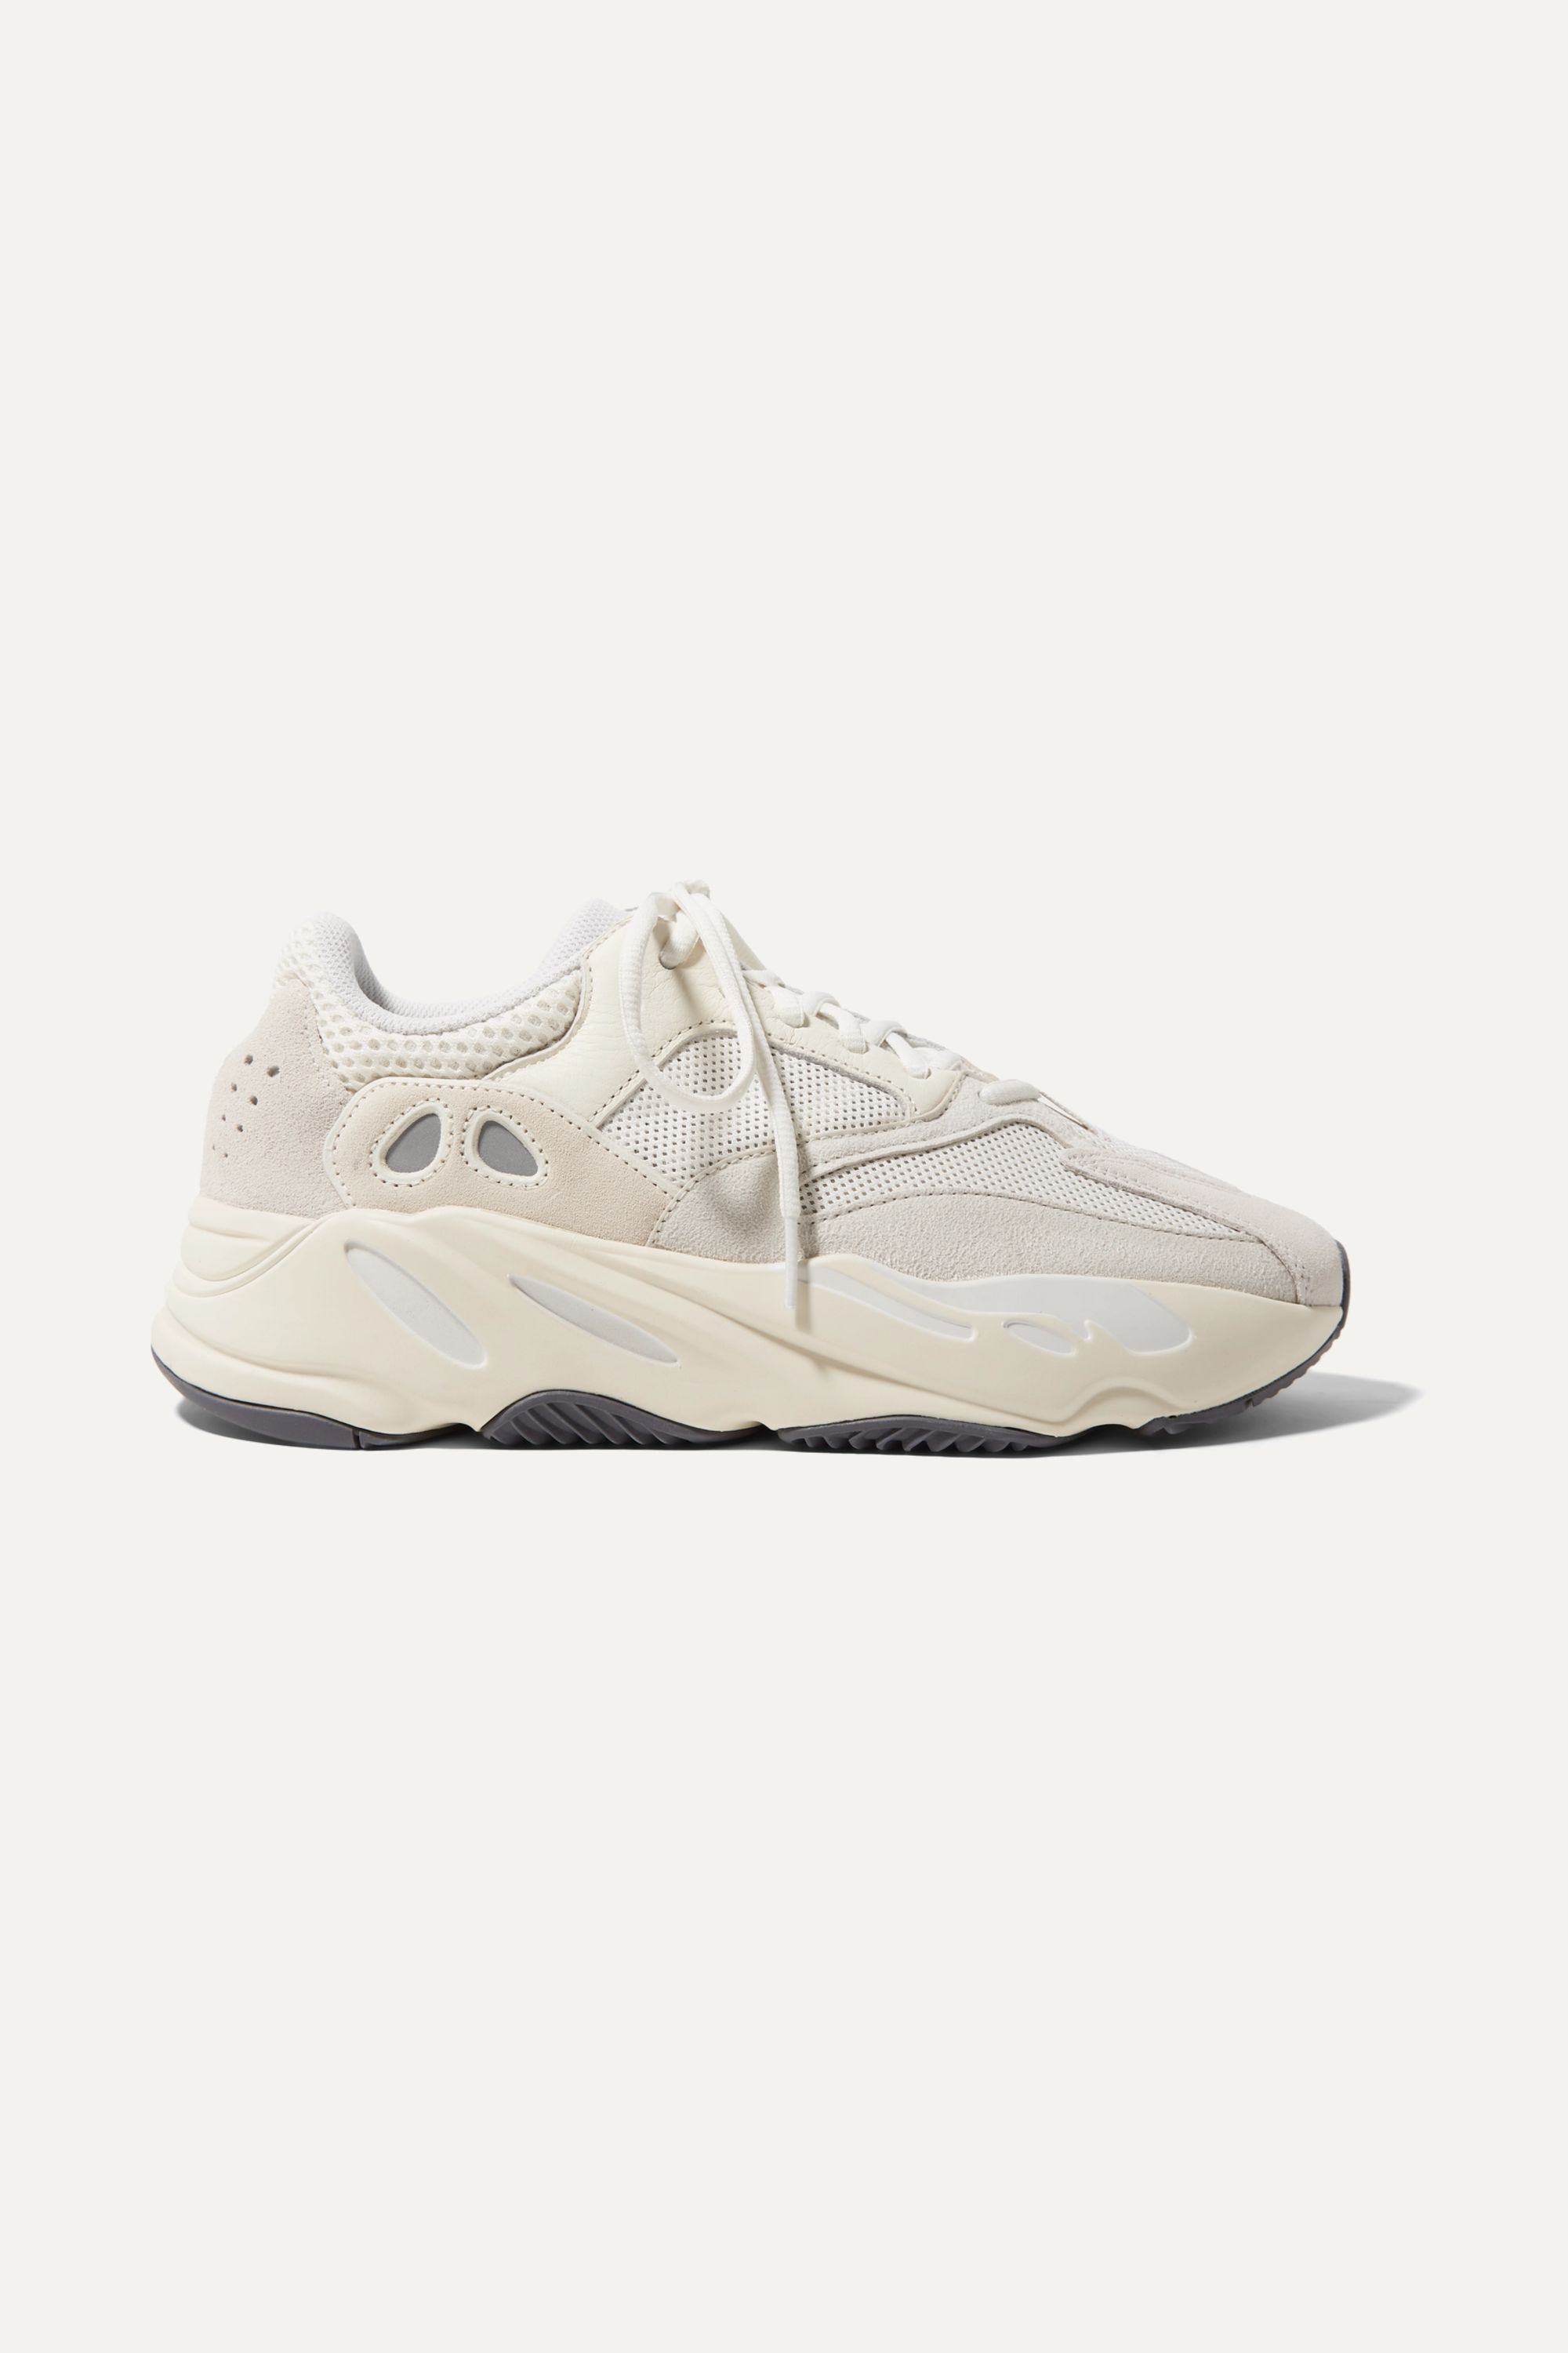 adidas Originals Yeezy Boost 700 suede, leather and mesh sneakers